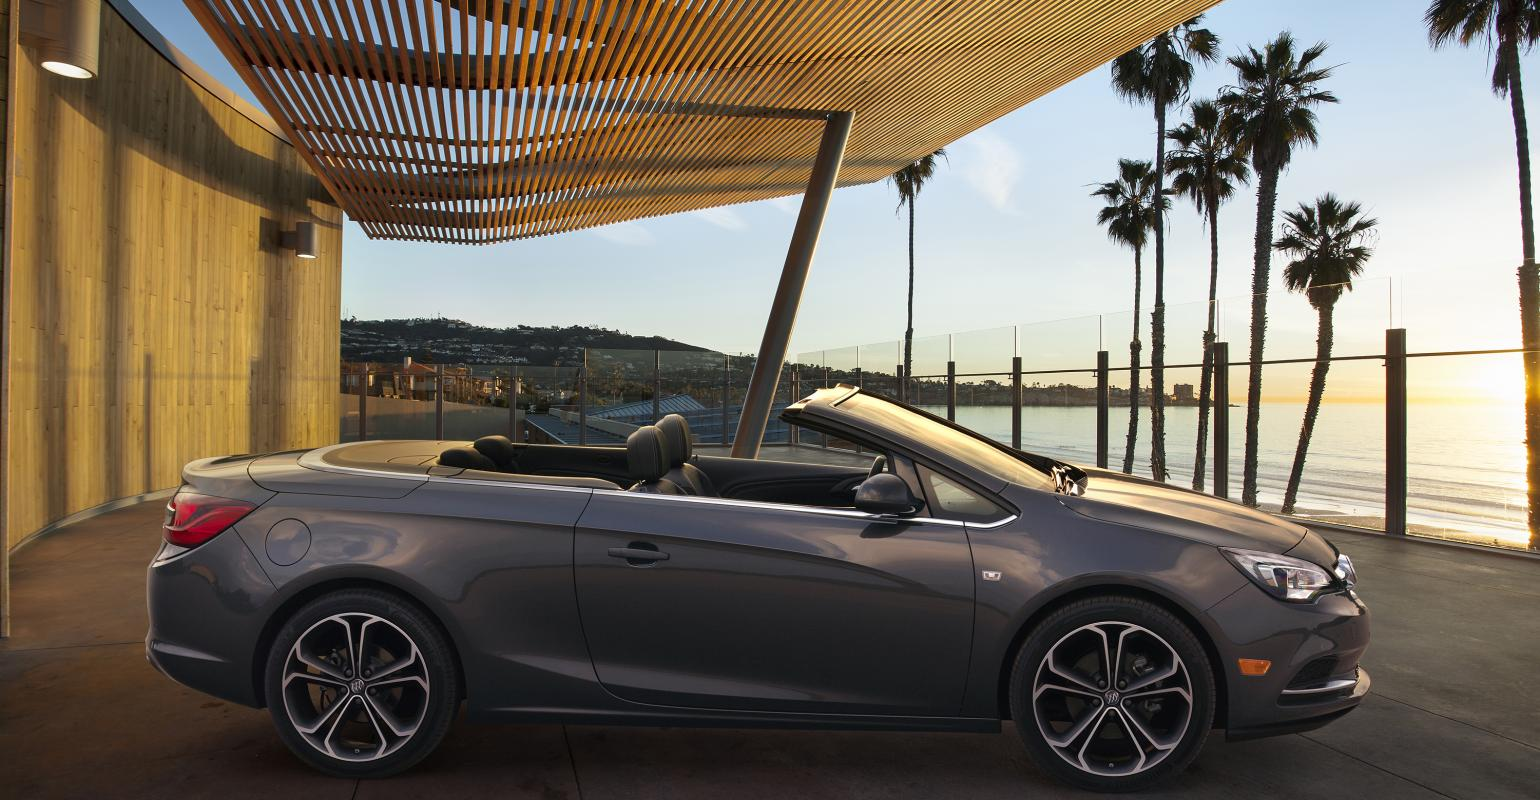 Buick will delight the public with its new 2017 LaCross sedan 79